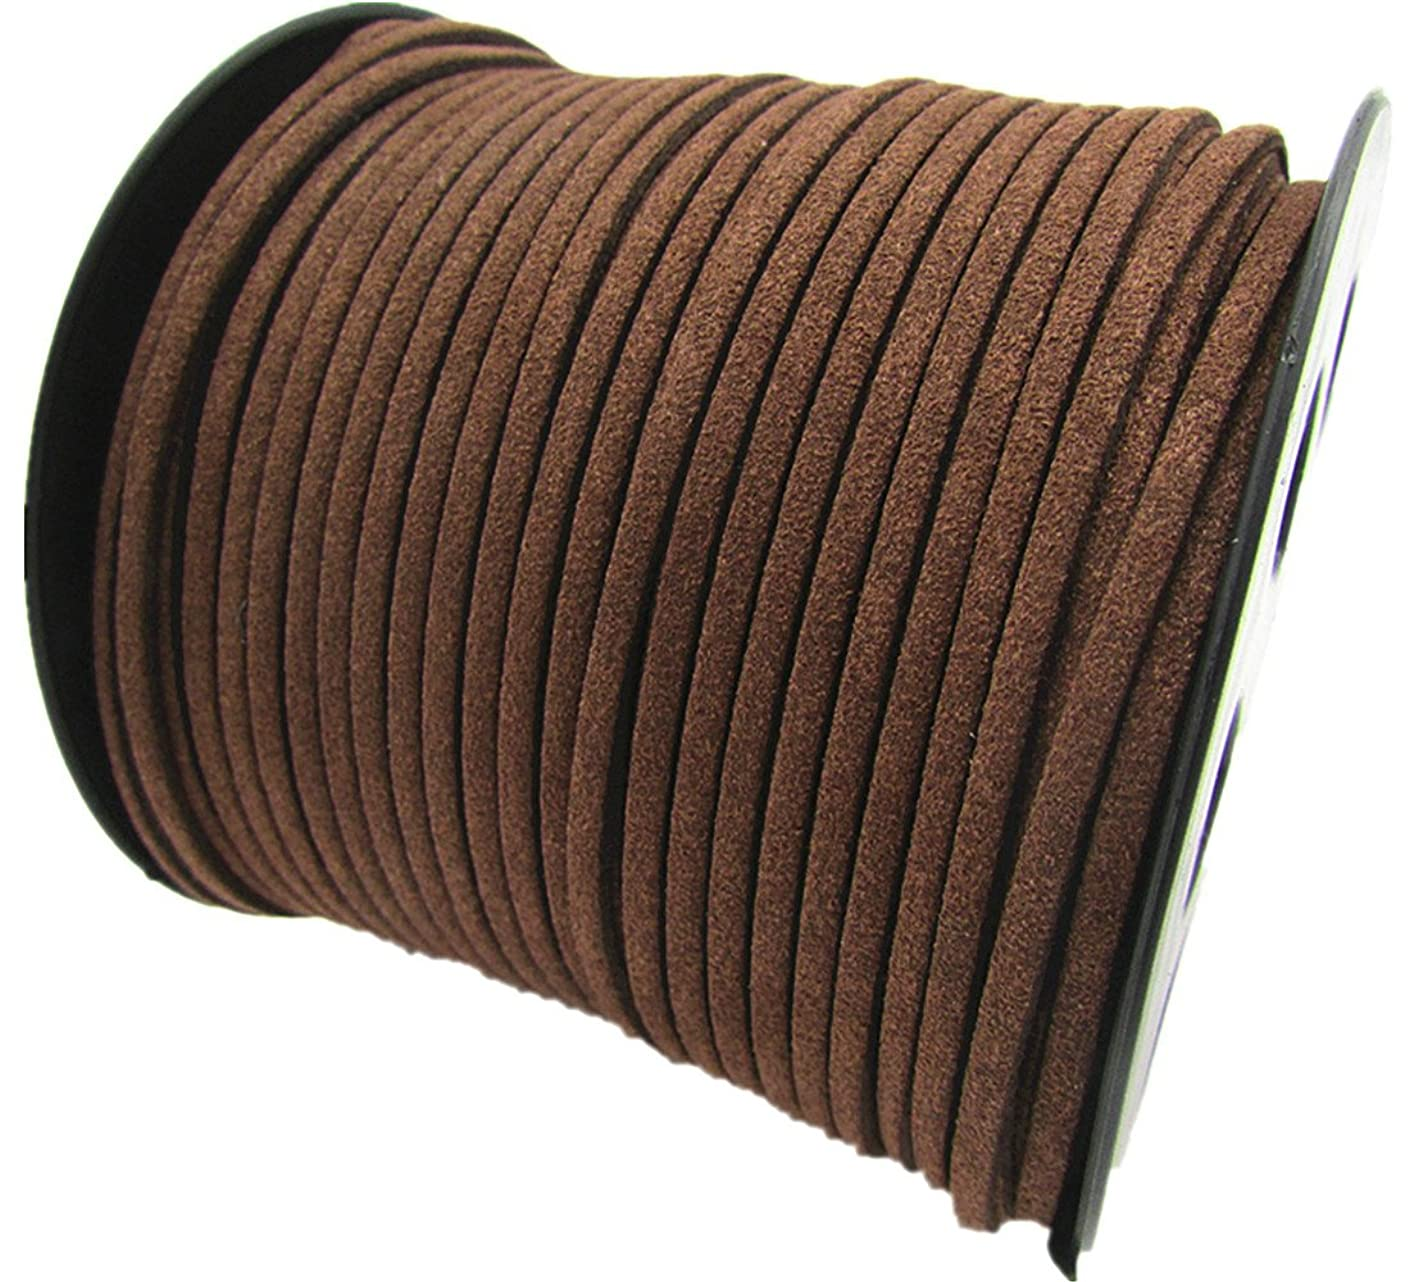 100 Yards Jewelry Making Flat Micro Fiber Lace Faux Suede Leather Cord (12 Colors) (Brown)